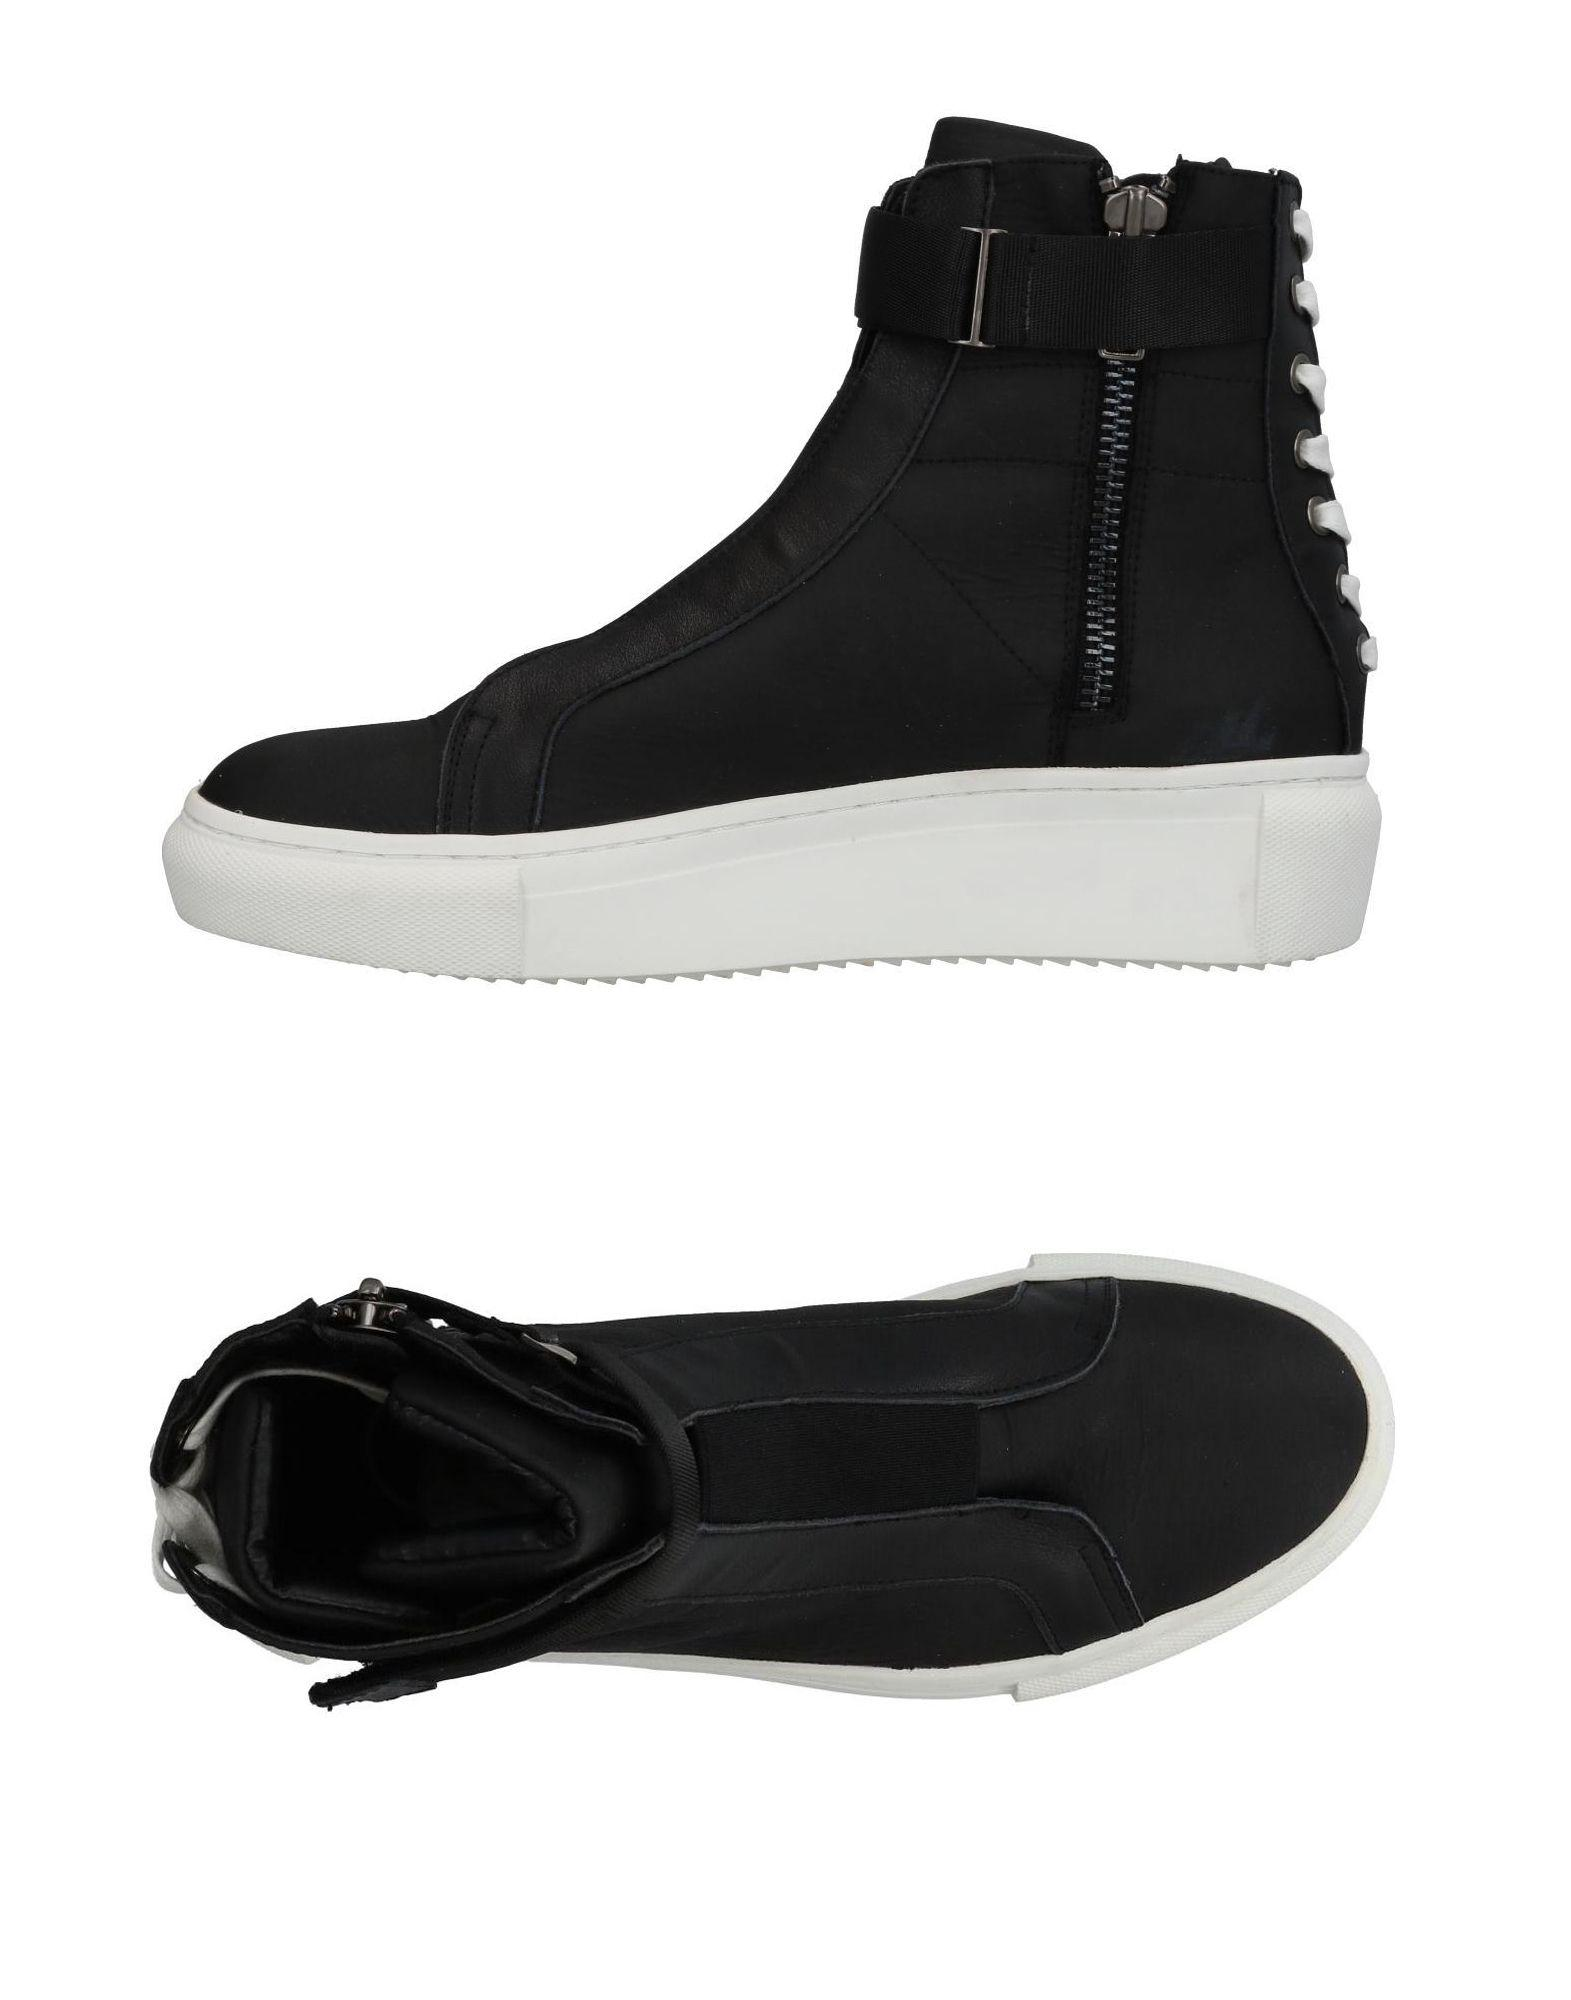 FOOTWEAR - High-tops & sneakers DBYD x YOOX 4htMfkh